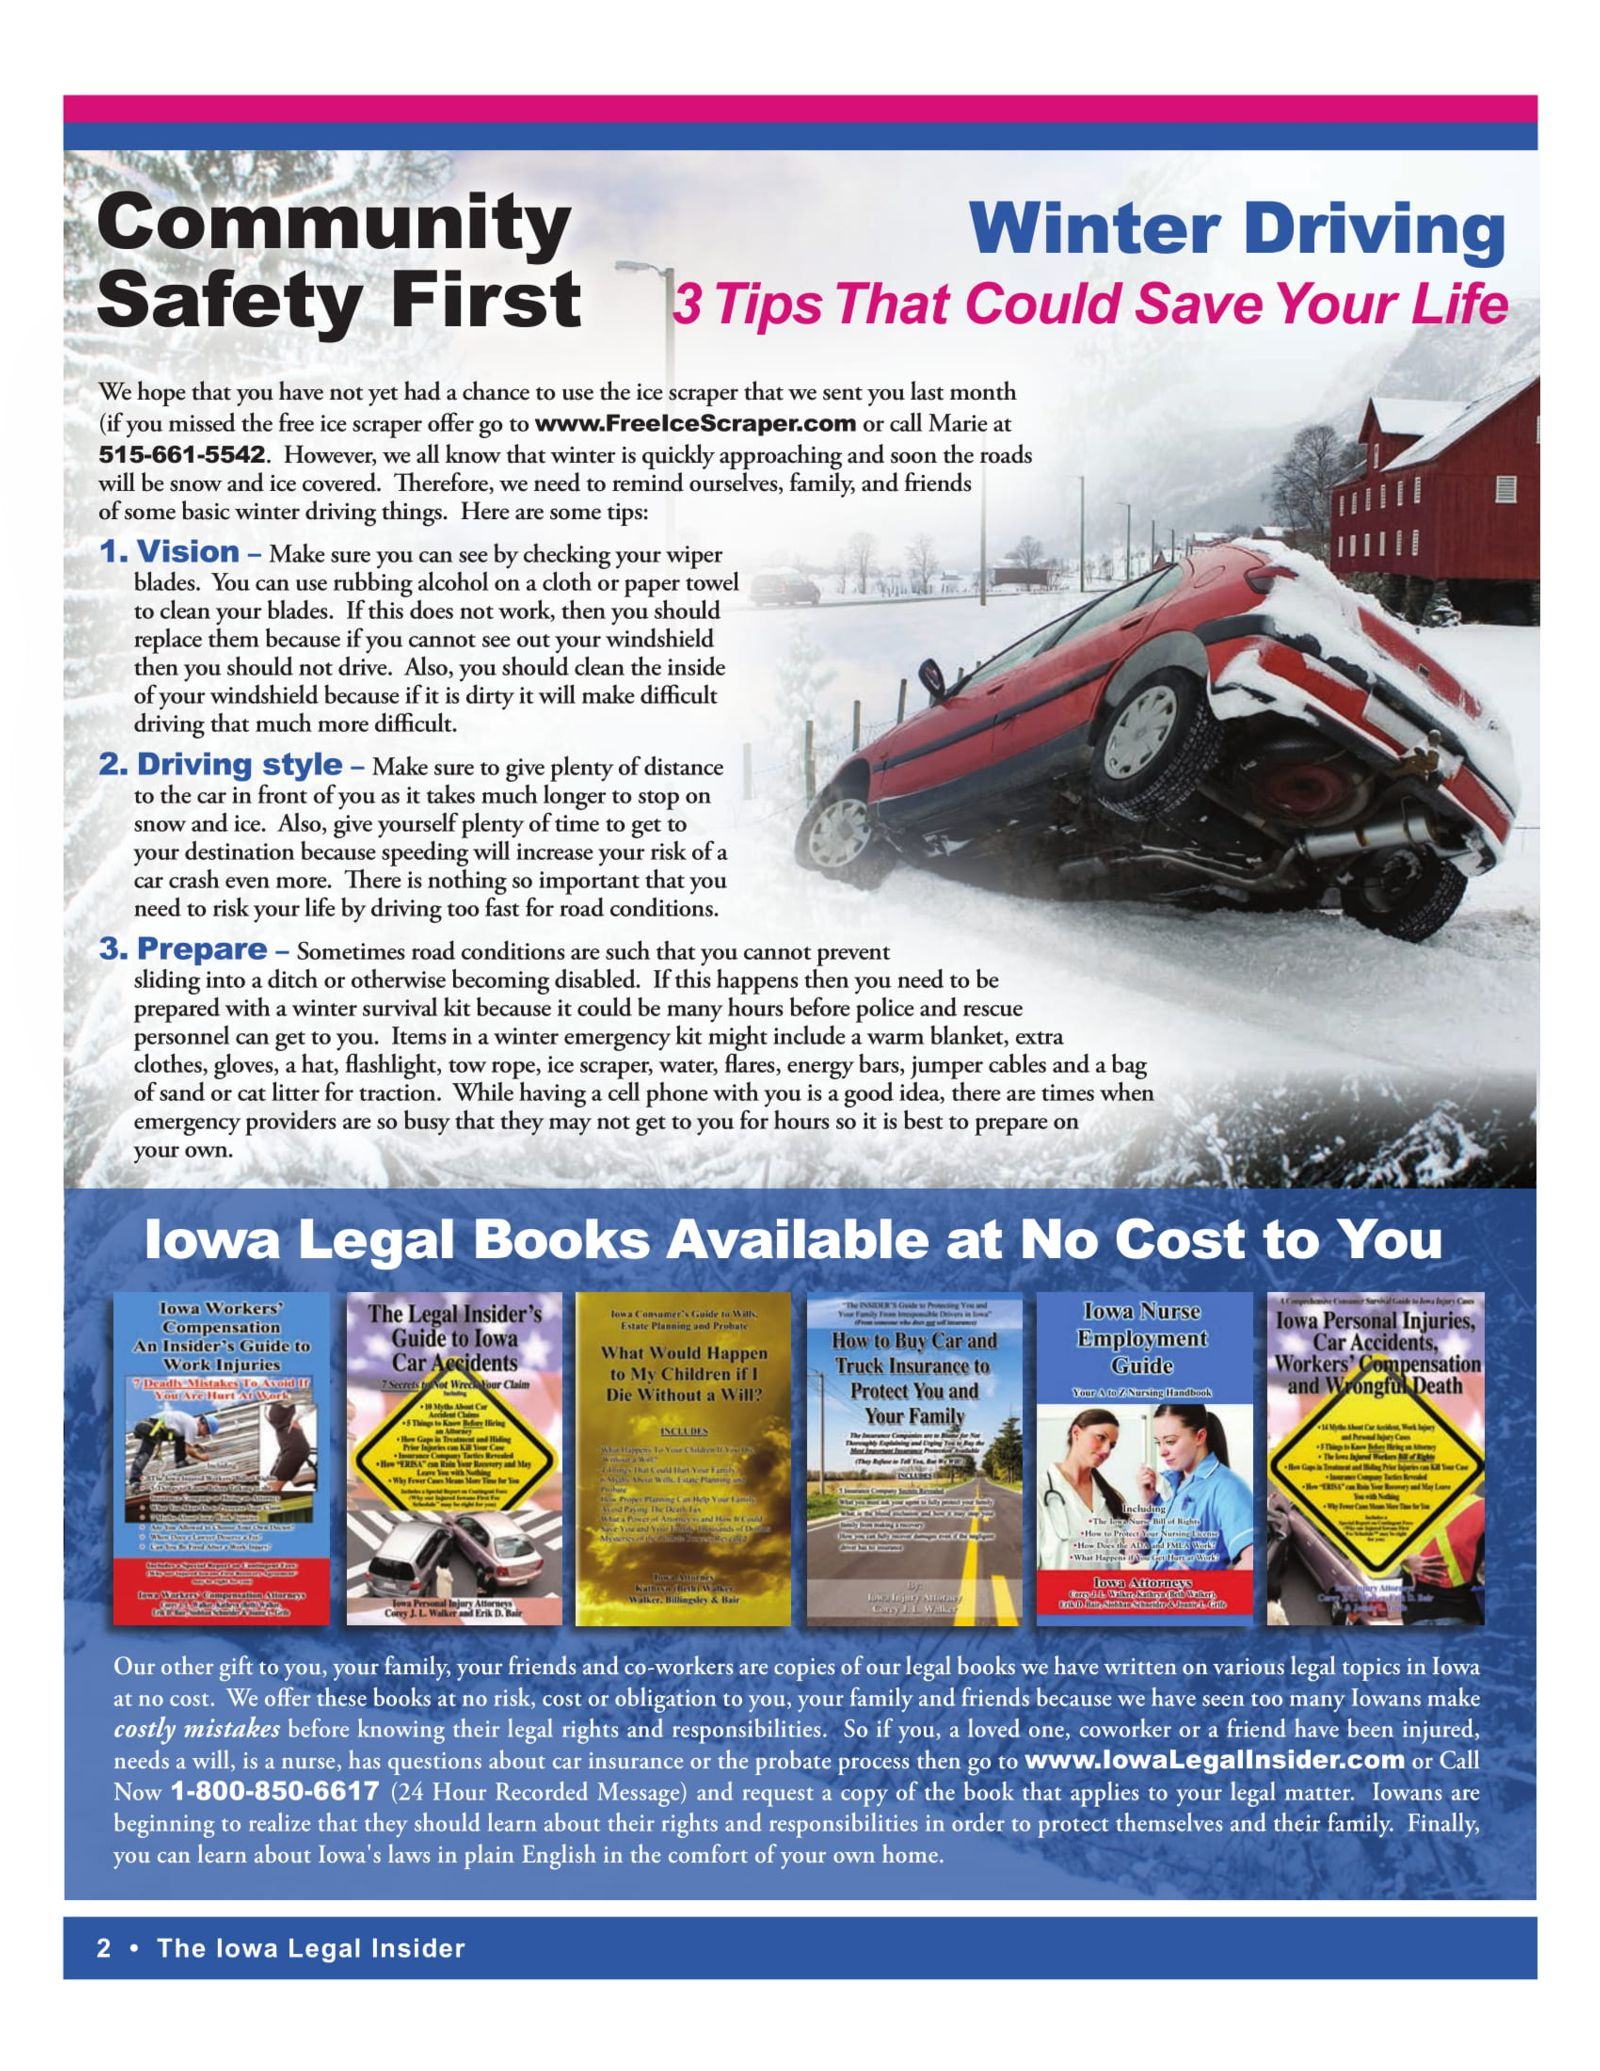 the iowa legal insider 3 winter driving tips